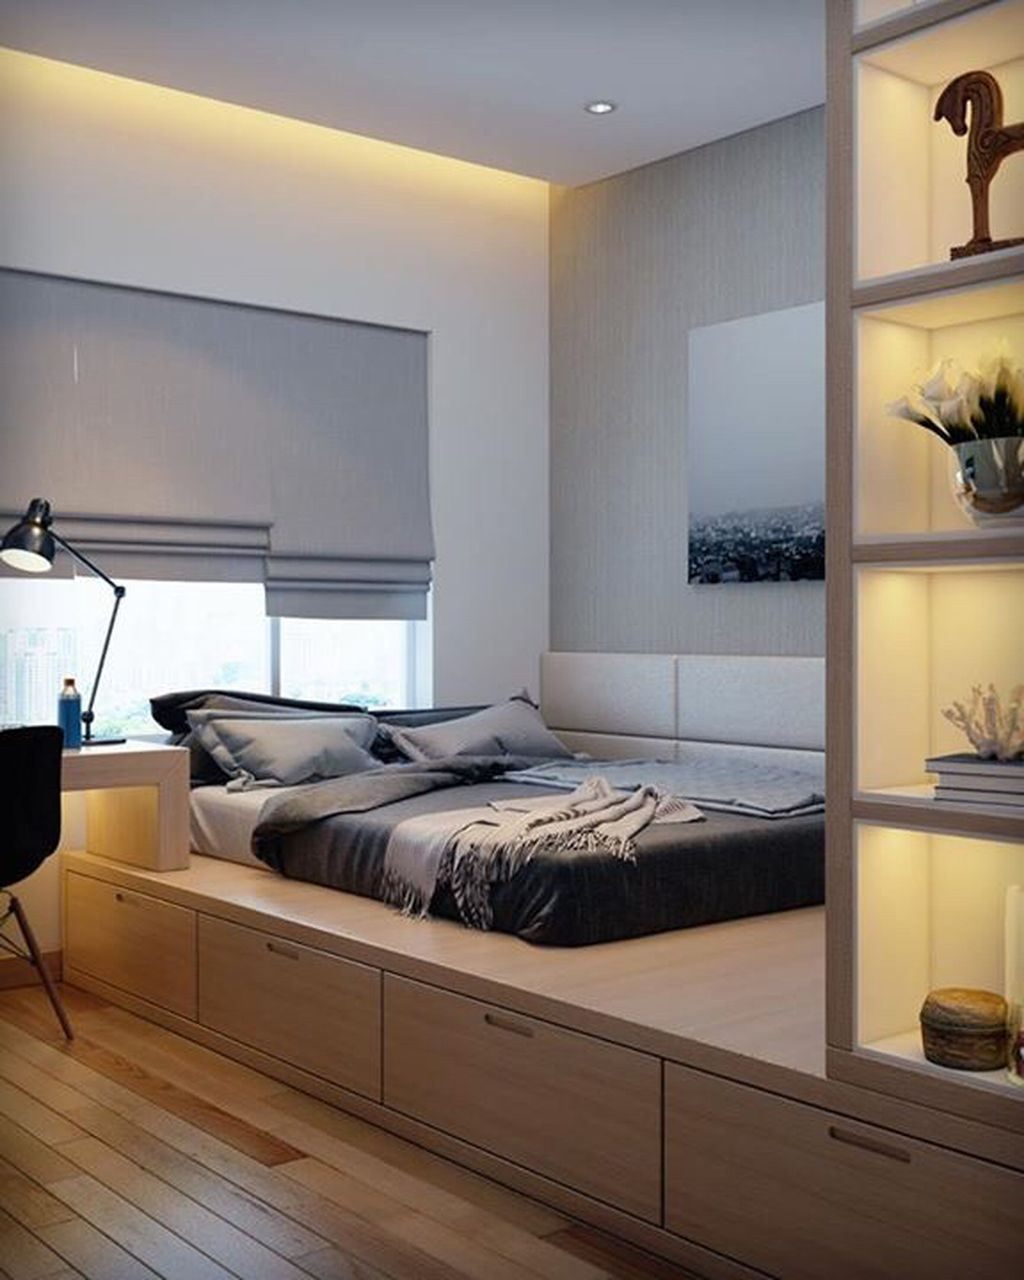 Modern But Simple Japanese Bedroom Design Ideas 30 Small Space Living Room Japanese Style Bedroom Small Room Design